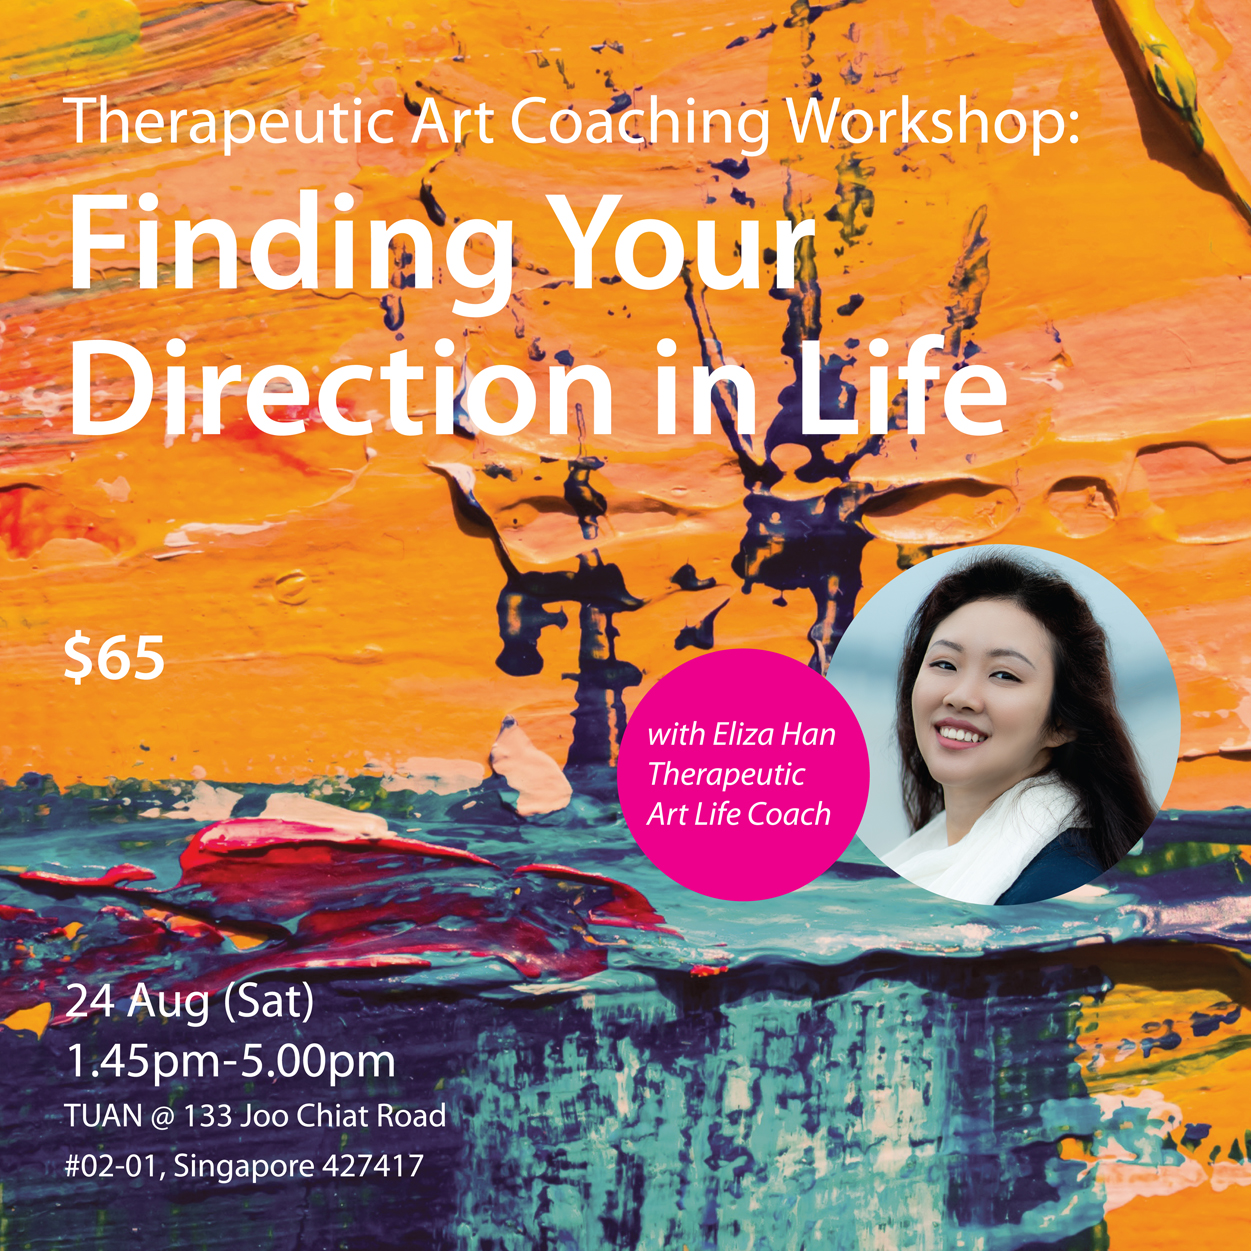 Therapeutic Art Coaching Workshop2.jpg